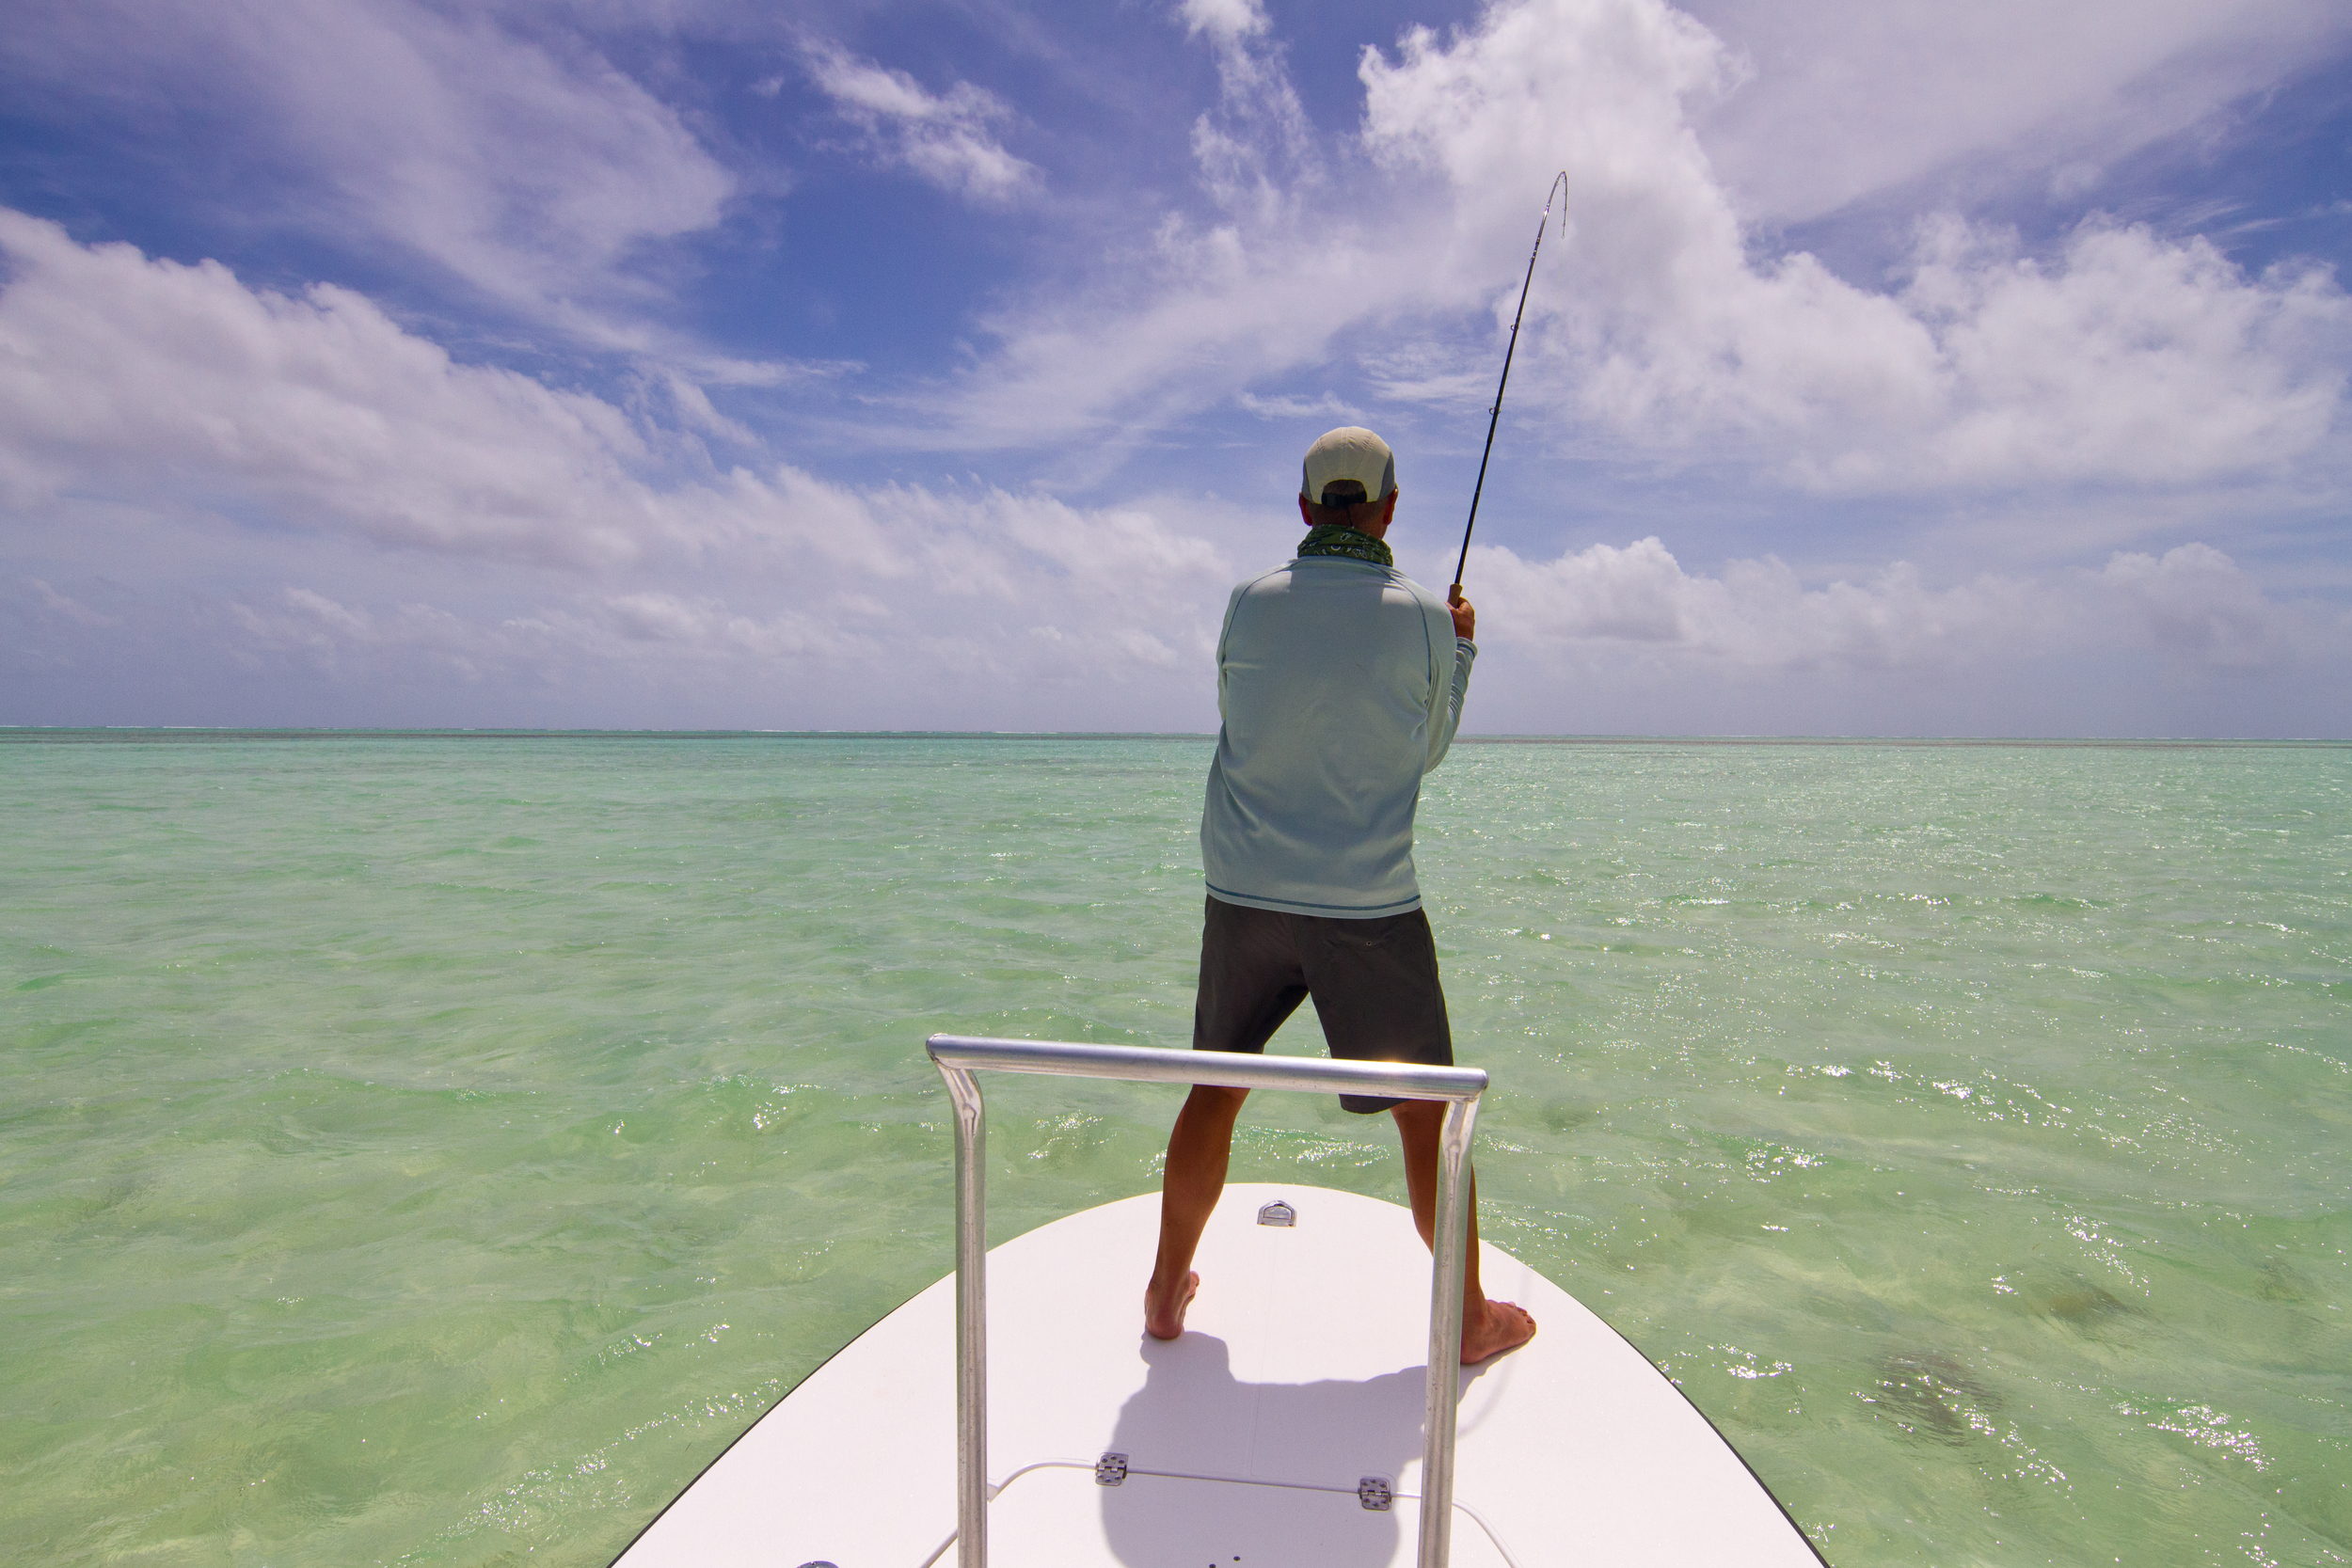 Fly Fishing for Permit, Cayo Cruz, Cuba